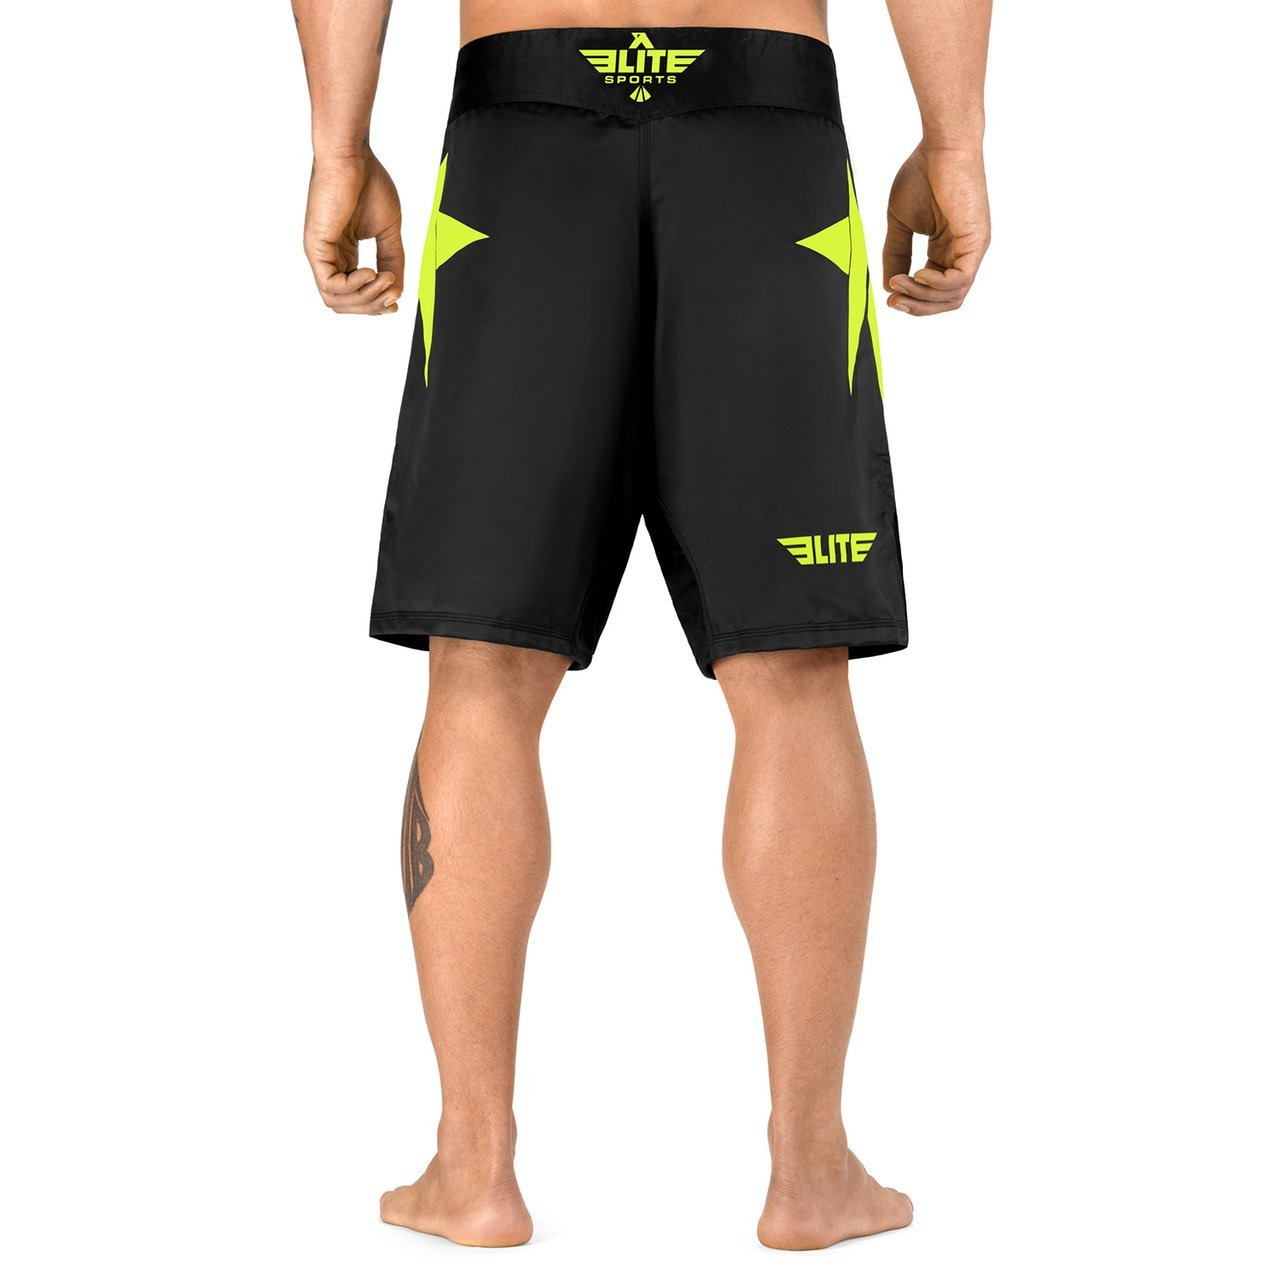 Load image into Gallery viewer, Elite Sports Star Series Sublimation Black/Hi Viz Wrestling Shorts